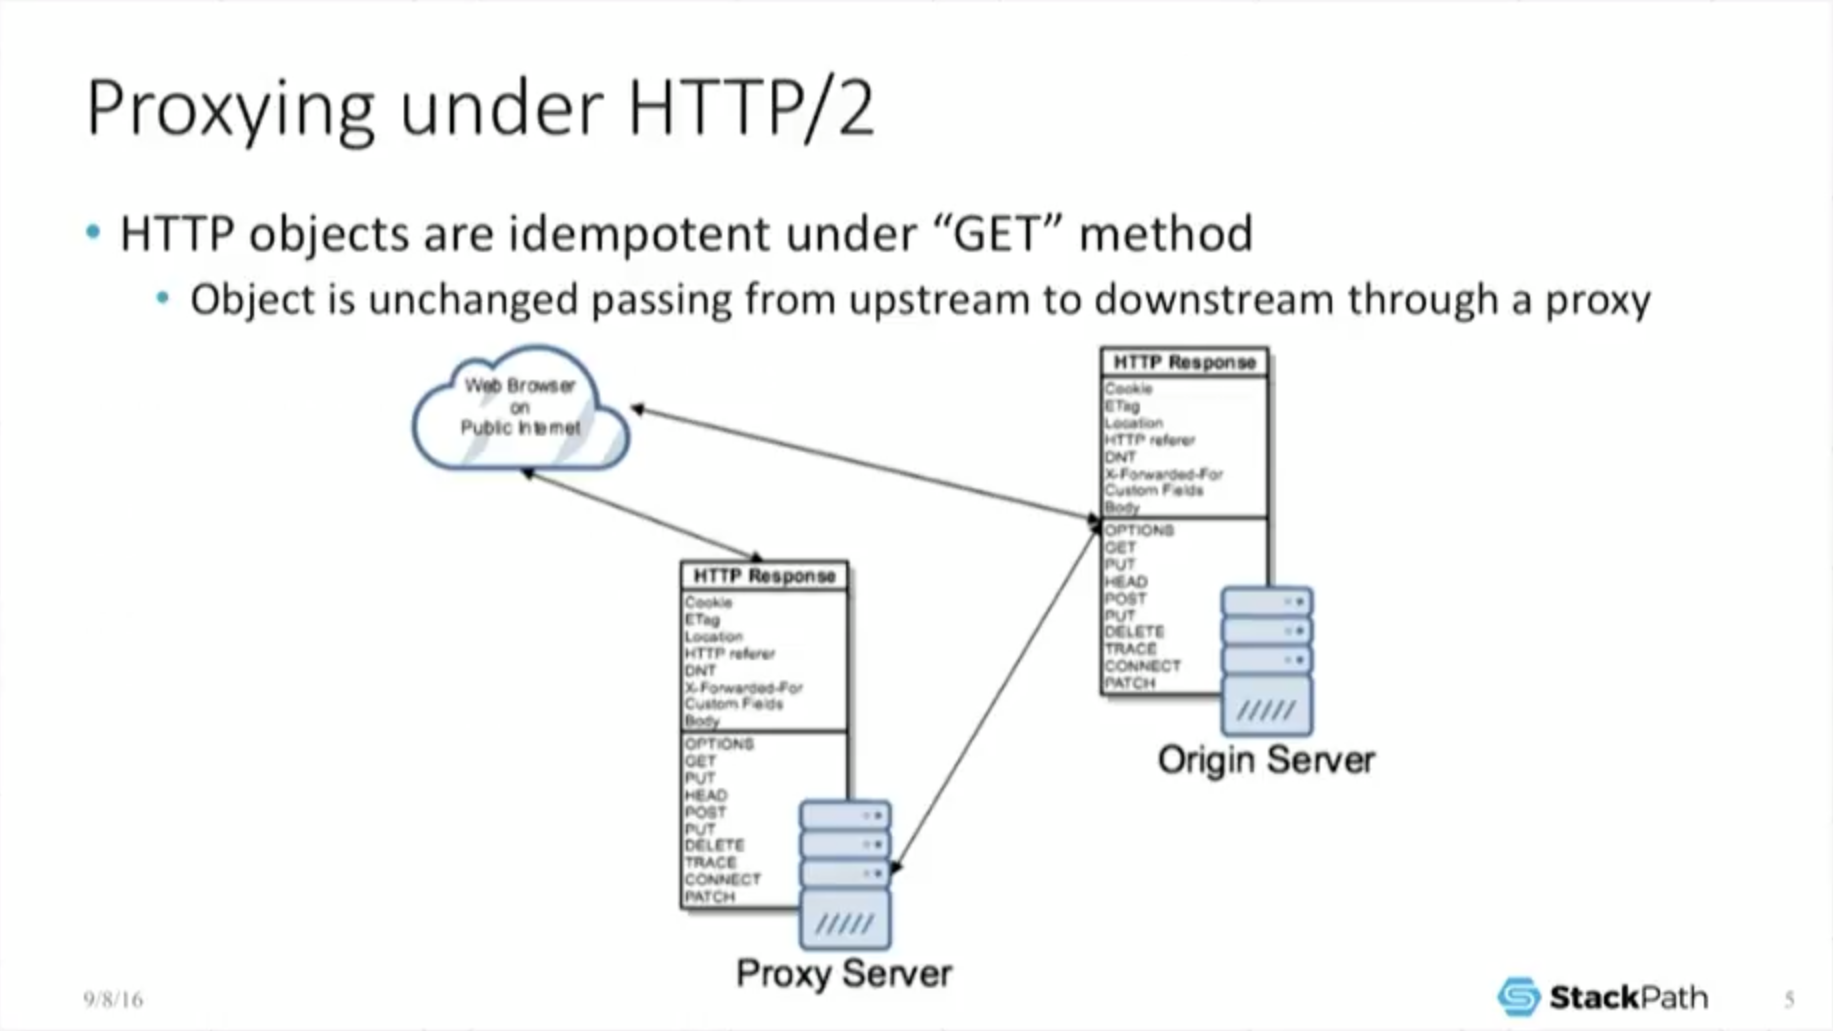 HTTP/2 Theory and Practice in NGINX Stable, Part 1 - NGINX